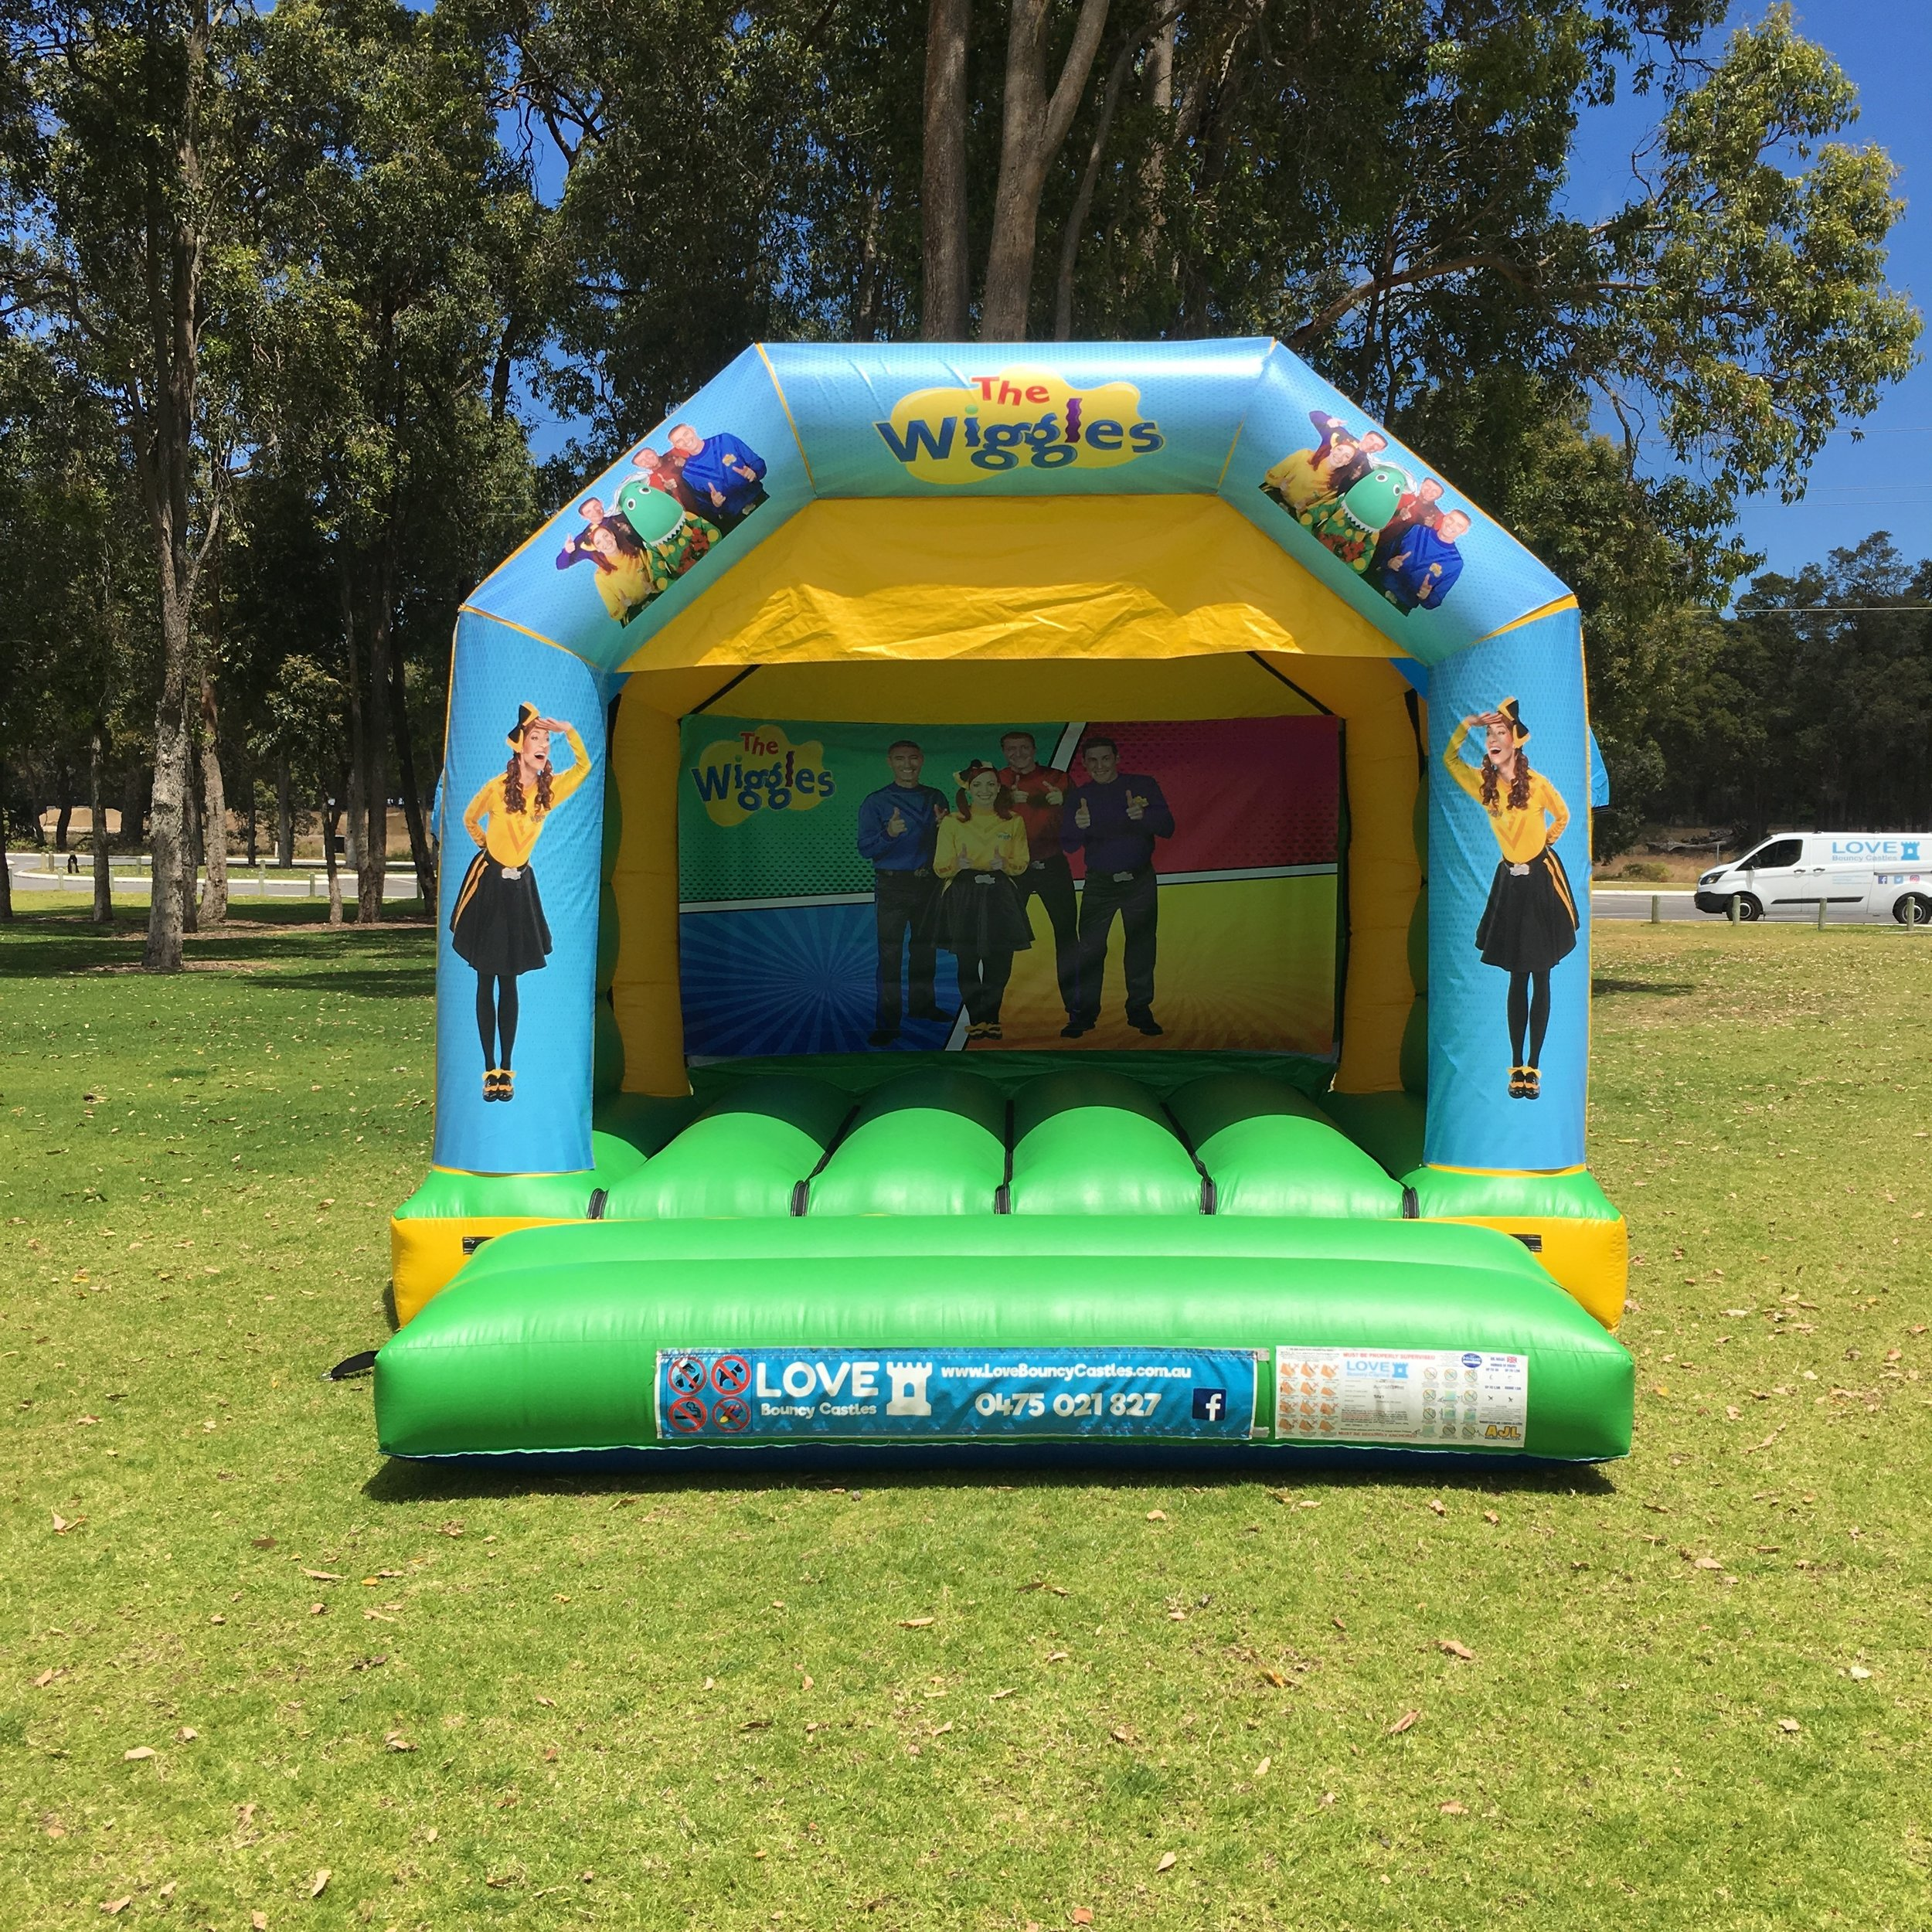 Small Bouncy Castles - Castle Size 4mL x 4mW x 3.4mHSuitable From 2 yrs to 12 yrsCapacity – Up to 6 kids at a timePricesHalf Day Hire ( 10am to 2pm ) $225Full Day Hire ( 10am to 4pm ) $275Night Hire ( 4pm to 7am ) $300Prices are based on yard parties. For park set up or events please call or email for a quotation.